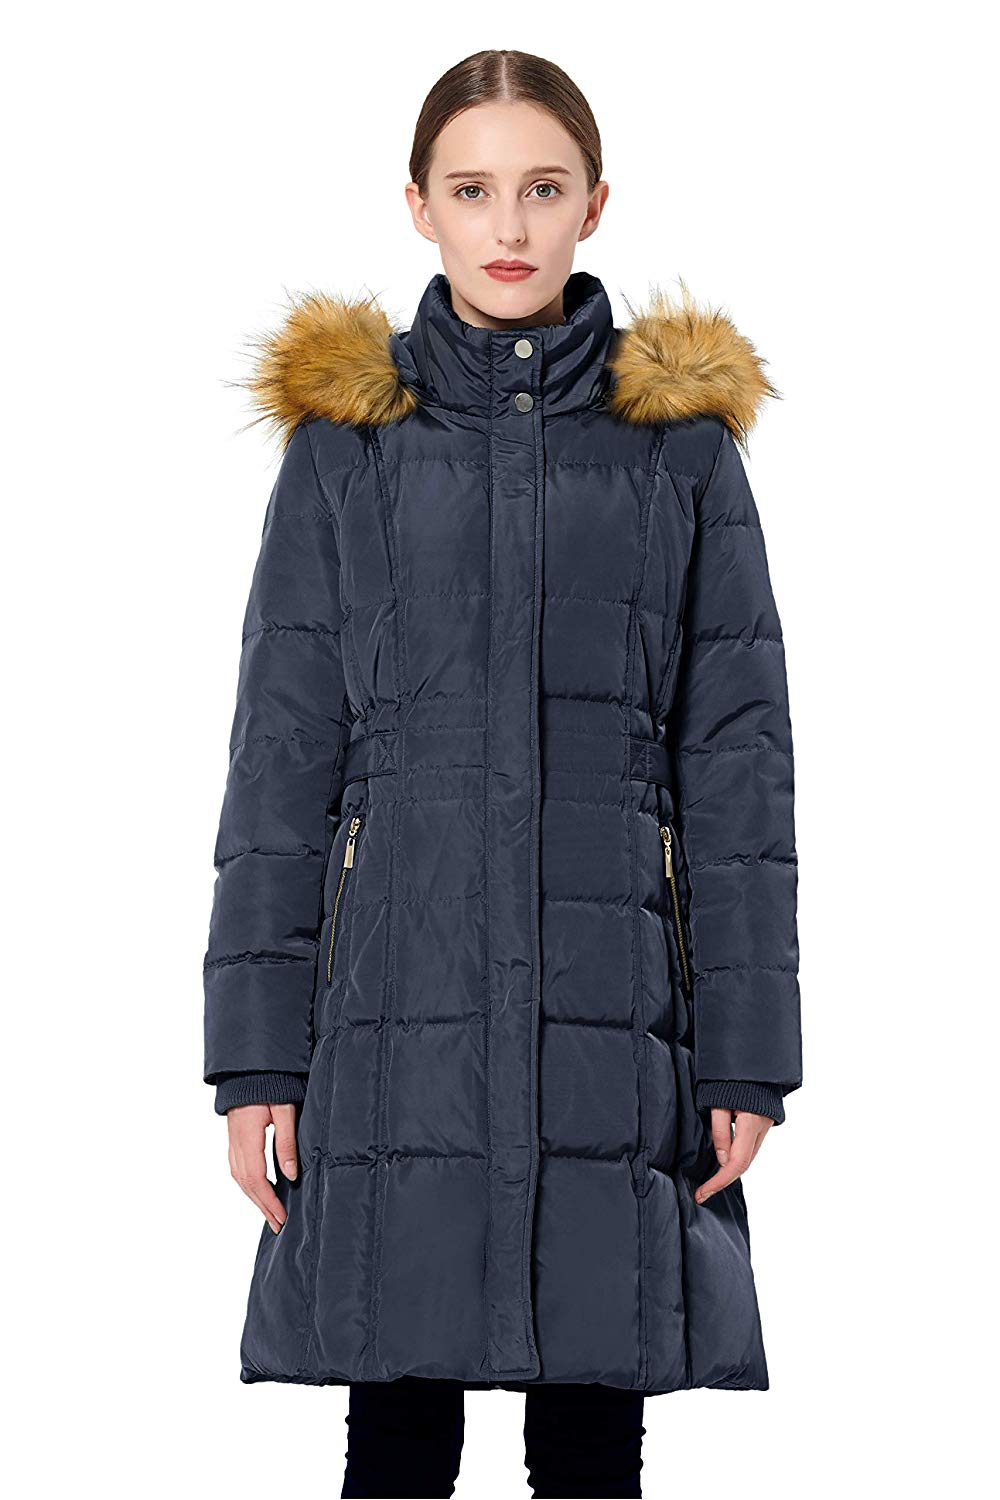 Orolay Women's Puffer Down Coat Winter Jacket with Faux ...